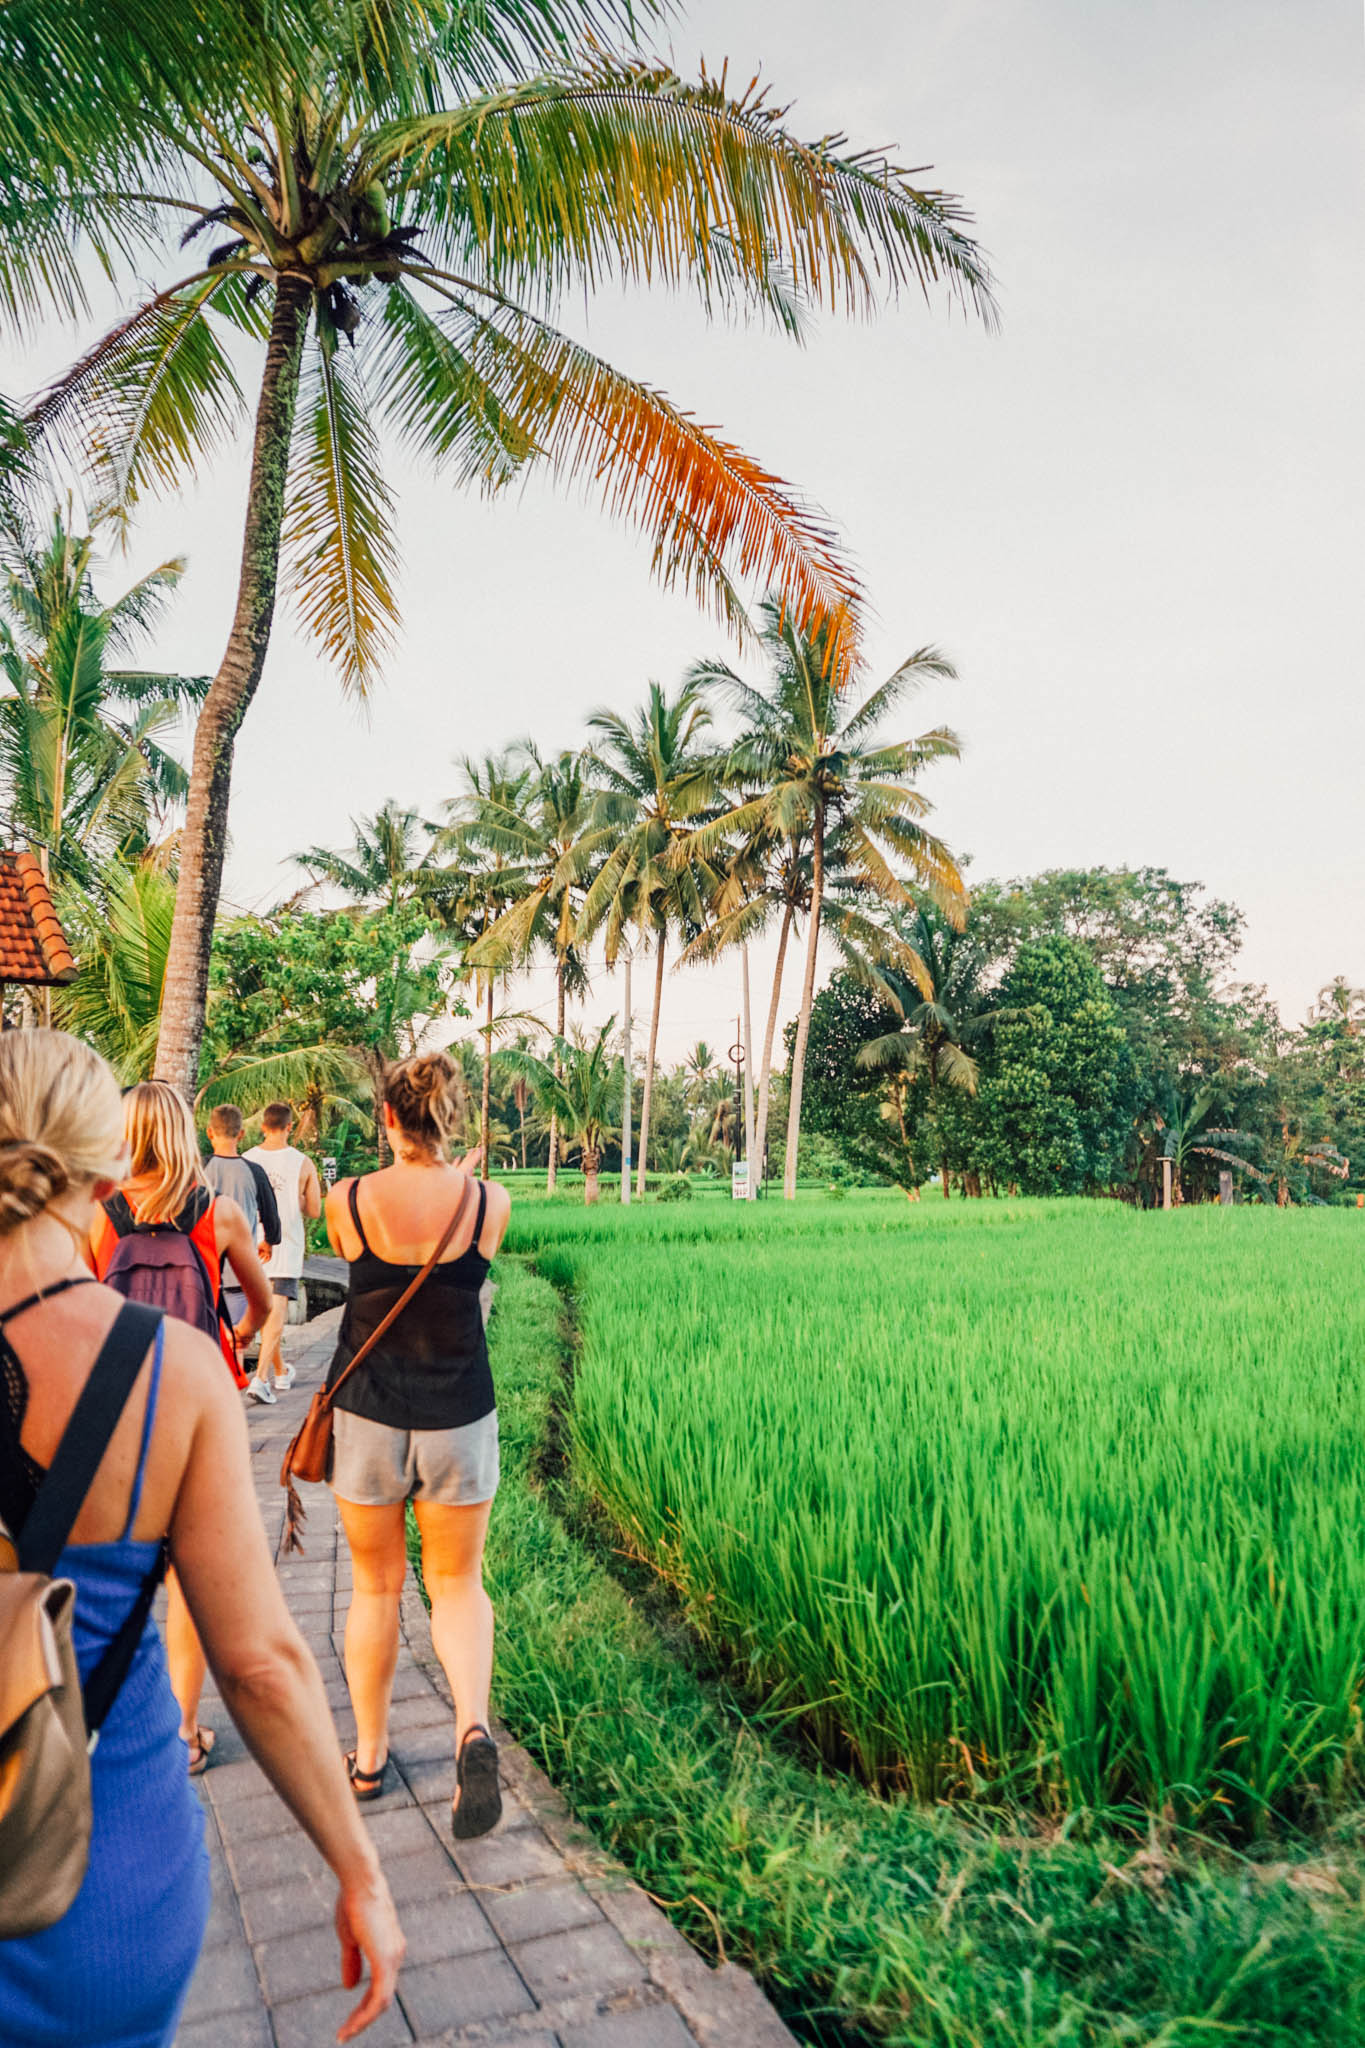 Walking among the rice fields in Ubud